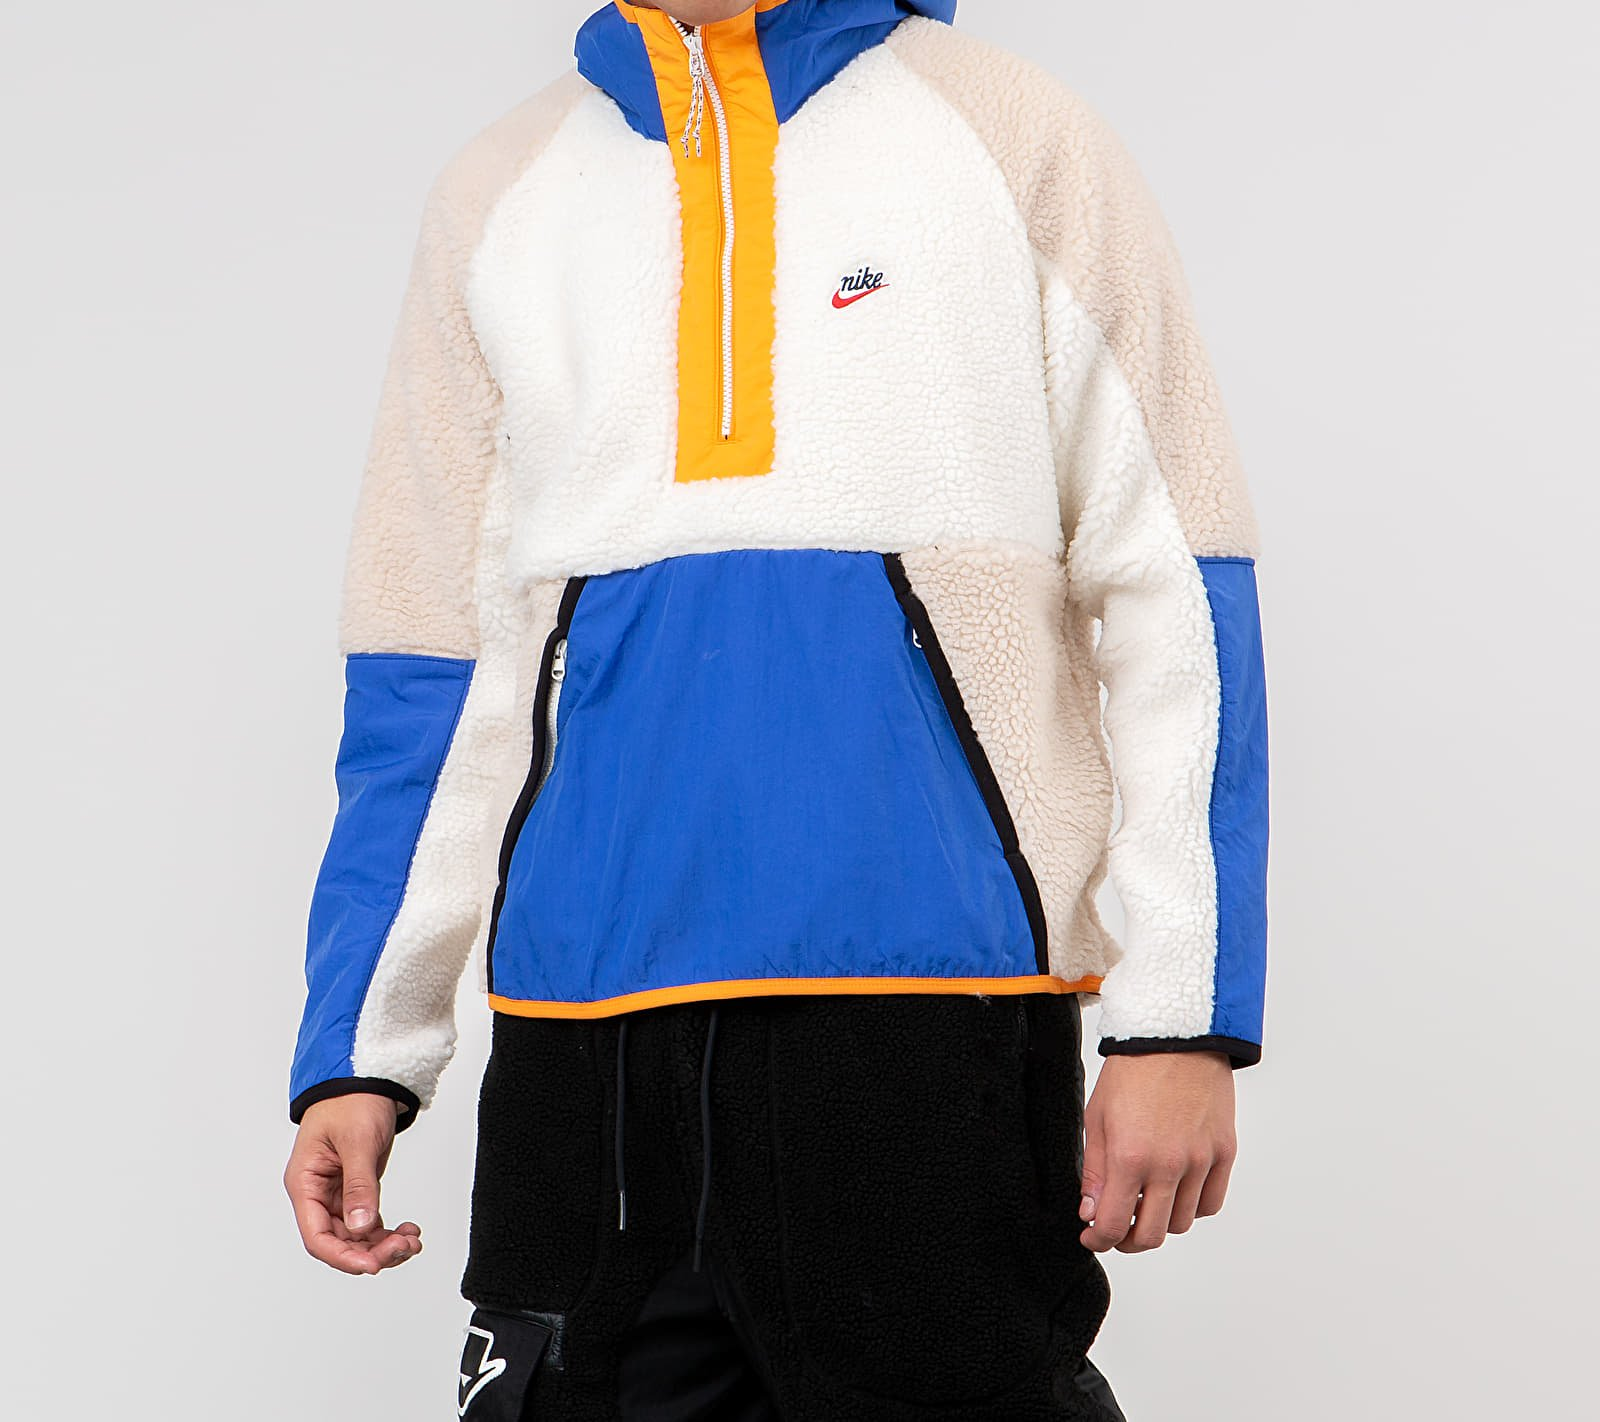 Nike Sportswear Halfzip Winter Hoodie Sail/ Game Royal/ Desert Sand, Multicolour